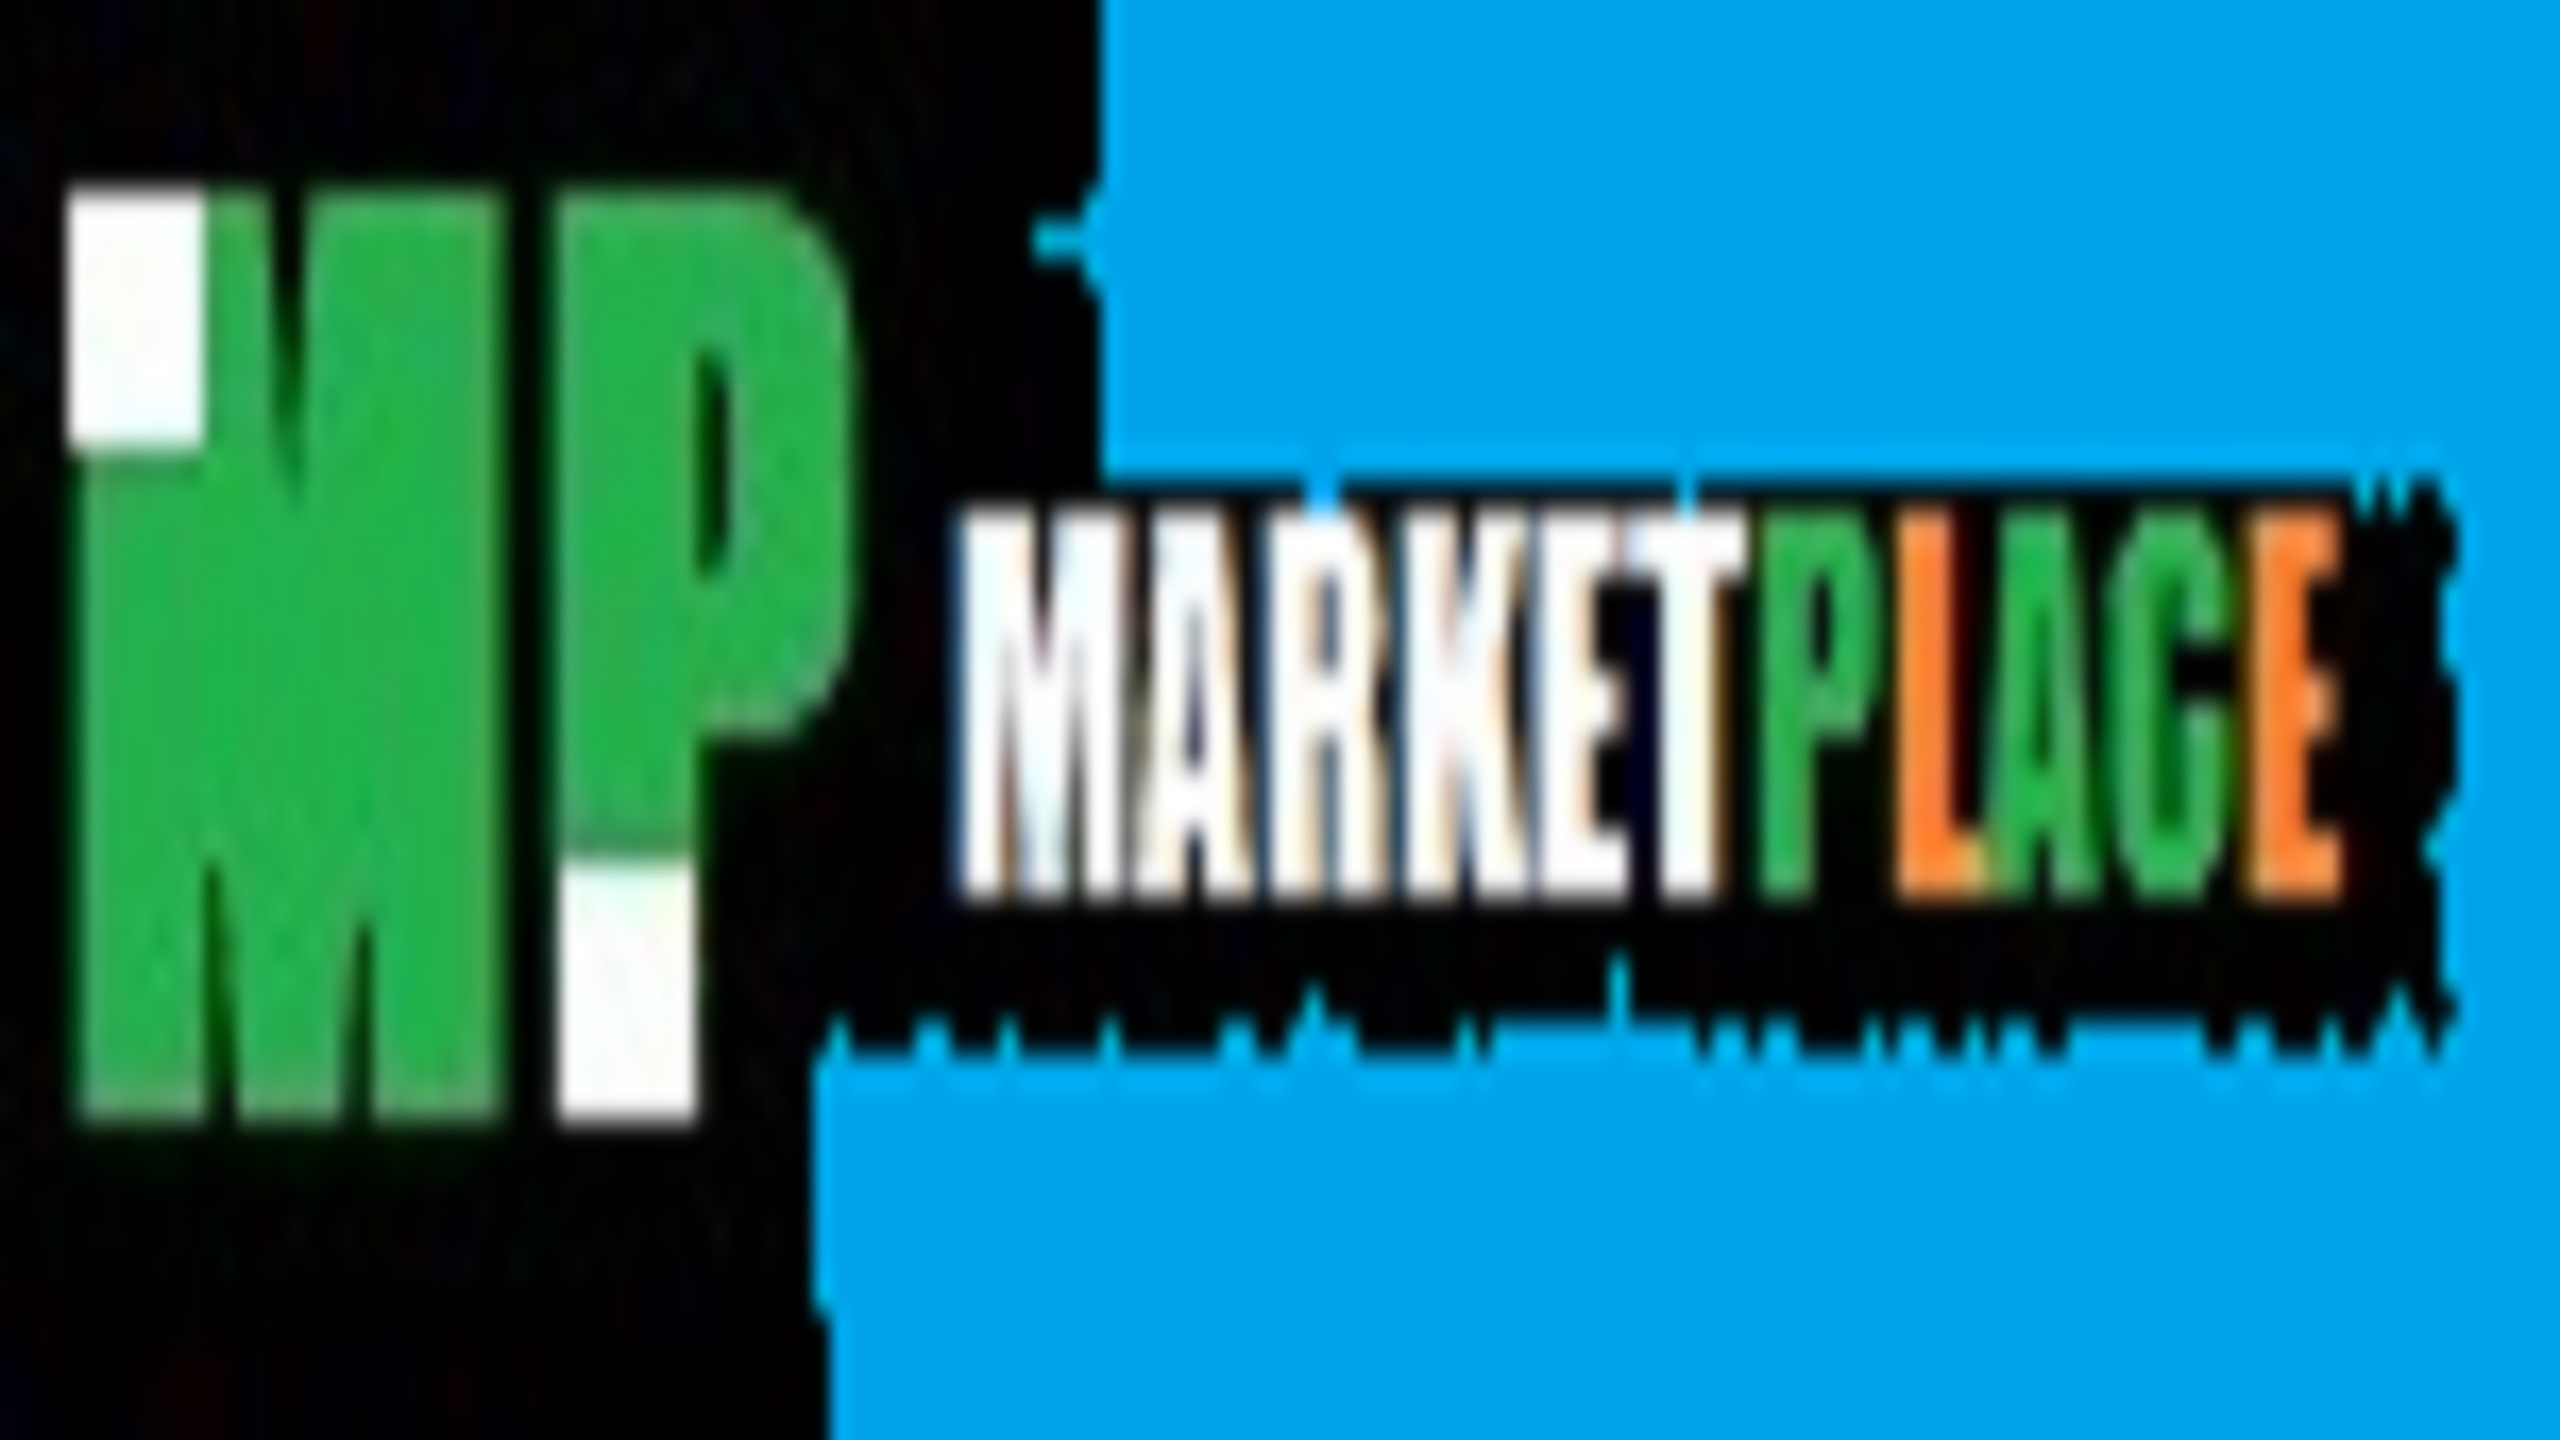 Marketplacelogin